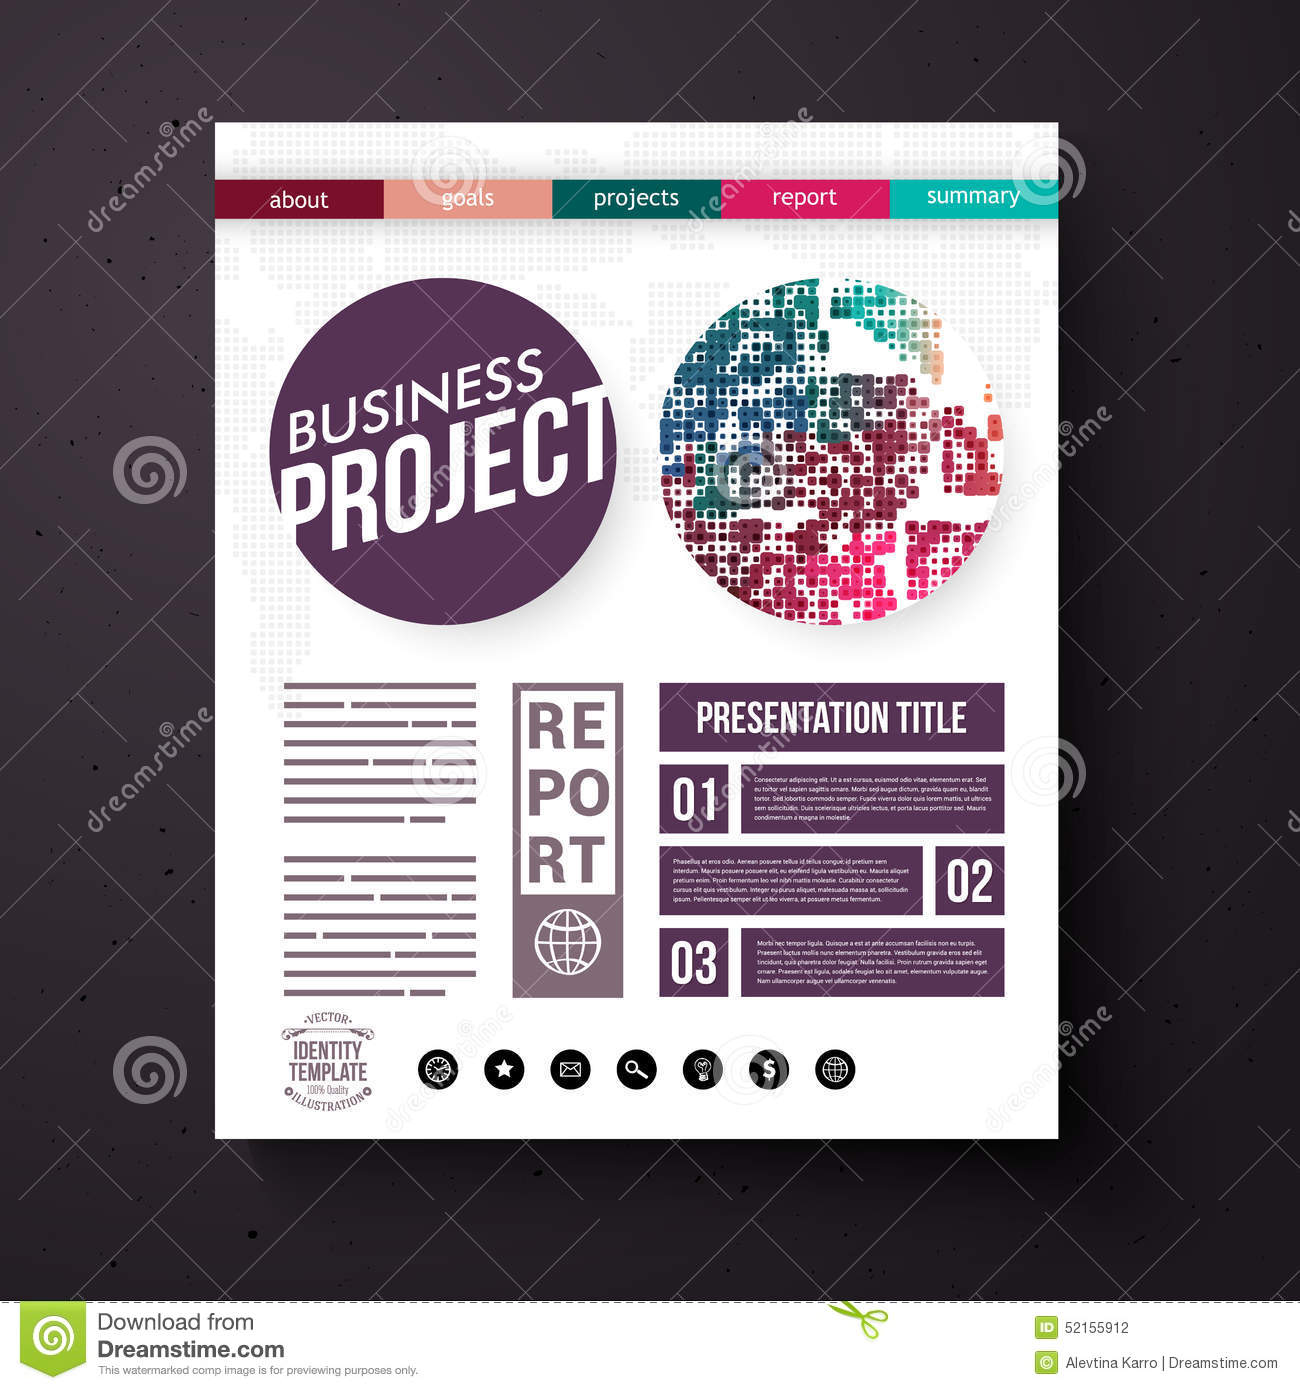 business project presentation